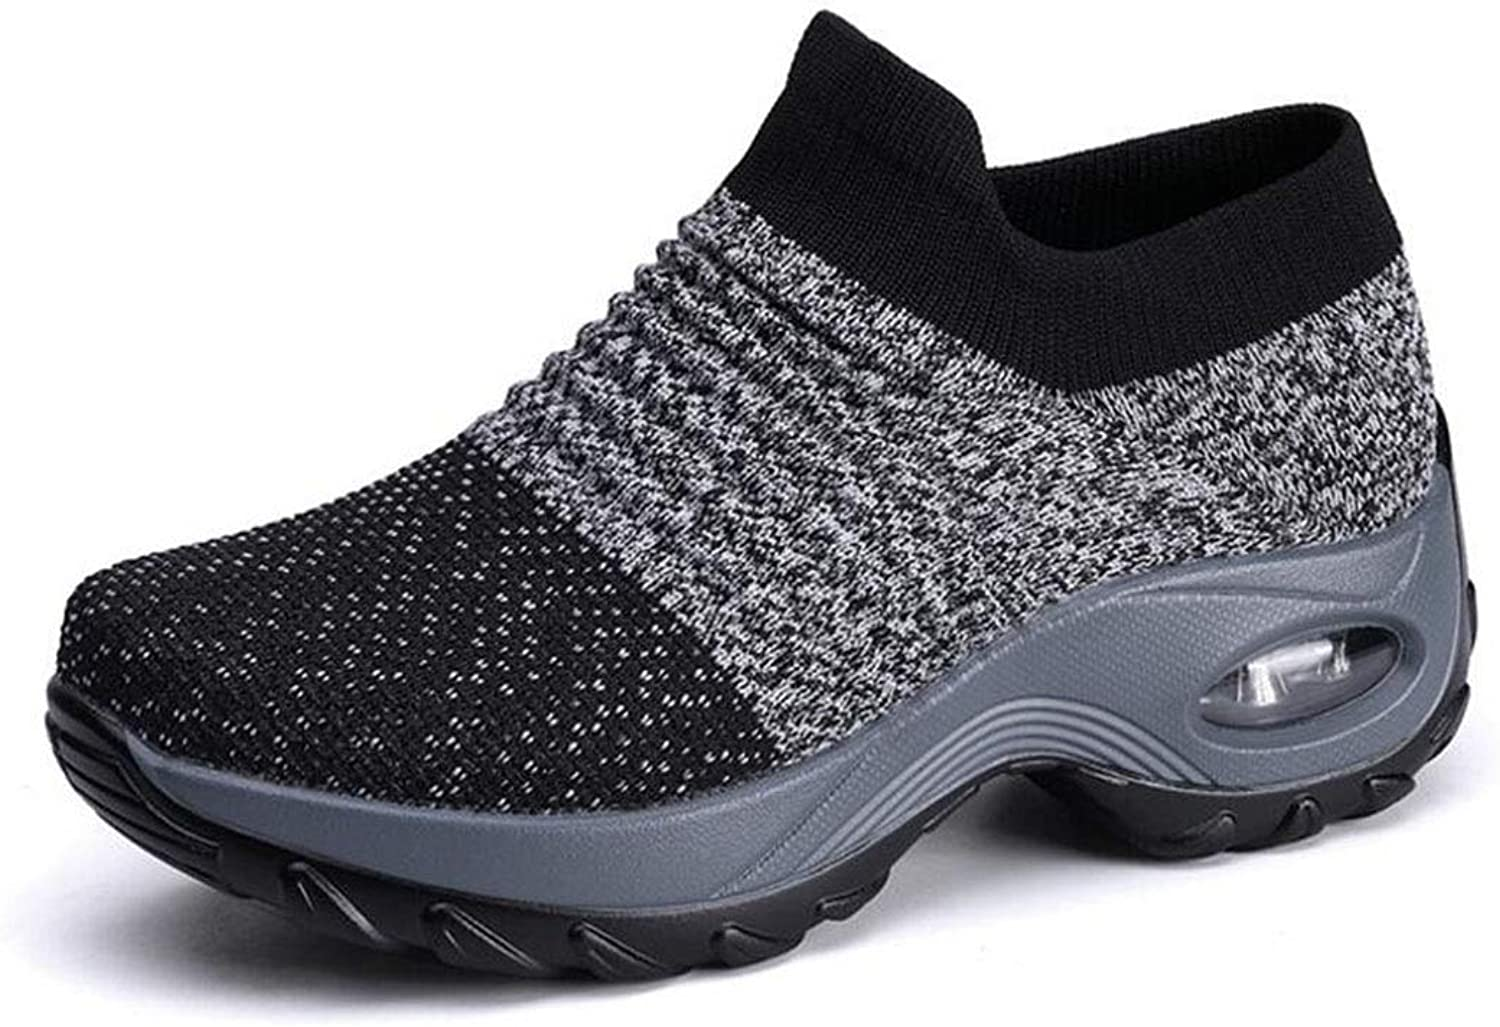 Women's Walking shoes Leather Anti-Slip Anti-Collision Water-Resistant shoes Outdoor Sports shoes Trainers Air Cushion Slip-on Lightweight Running shoes (color   Black, Size   36)